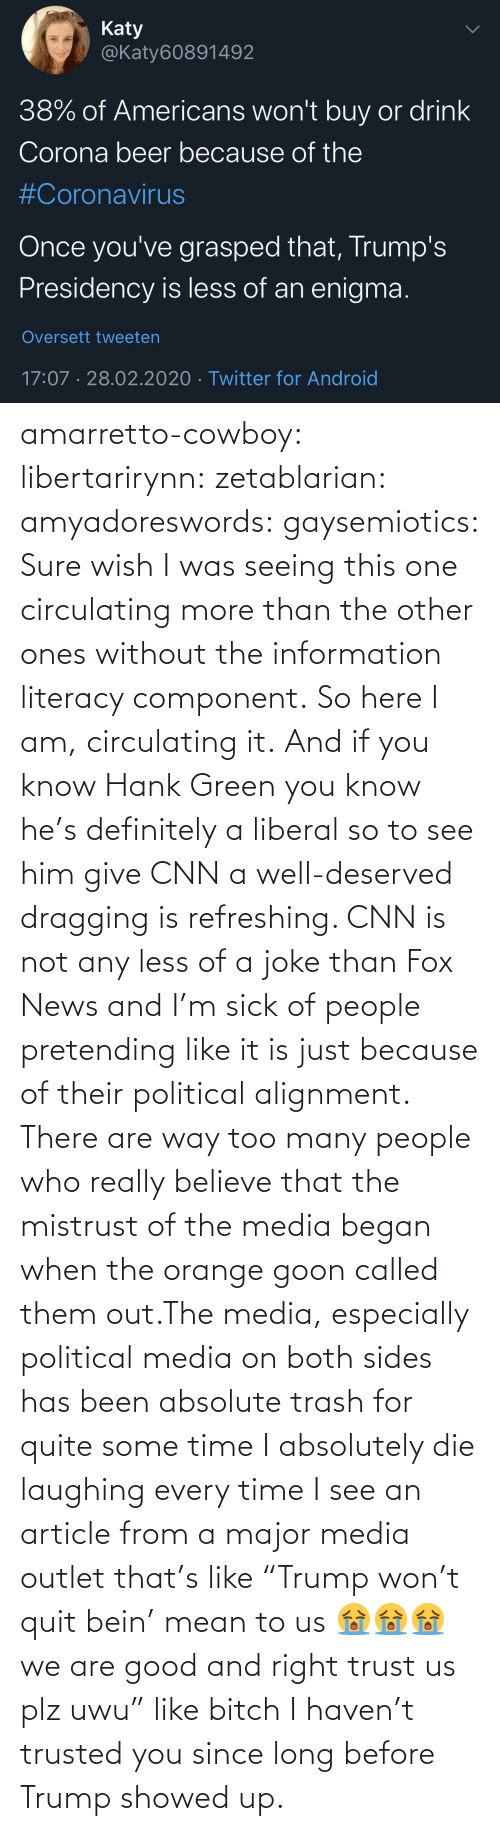 "trust: amarretto-cowboy:  libertarirynn:  zetablarian:  amyadoreswords:   gaysemiotics:       Sure wish I was seeing this one circulating more than the other ones without the information literacy component. So here I am, circulating it.    And if you know Hank Green you know he's definitely a liberal so to see him give CNN a well-deserved dragging is refreshing. CNN is not any less of a joke than Fox News and I'm sick of people pretending like it is just because of their political alignment.   There are way too many people who really believe that the mistrust of the media began when the orange goon called them out.The media, especially political media on both sides has been absolute trash for quite some time   I absolutely die laughing every time I see an article from a major media outlet that's like ""Trump won't quit bein' mean to us 😭😭😭 we are good and right trust us plz uwu"" like bitch I haven't trusted you since long before Trump showed up."